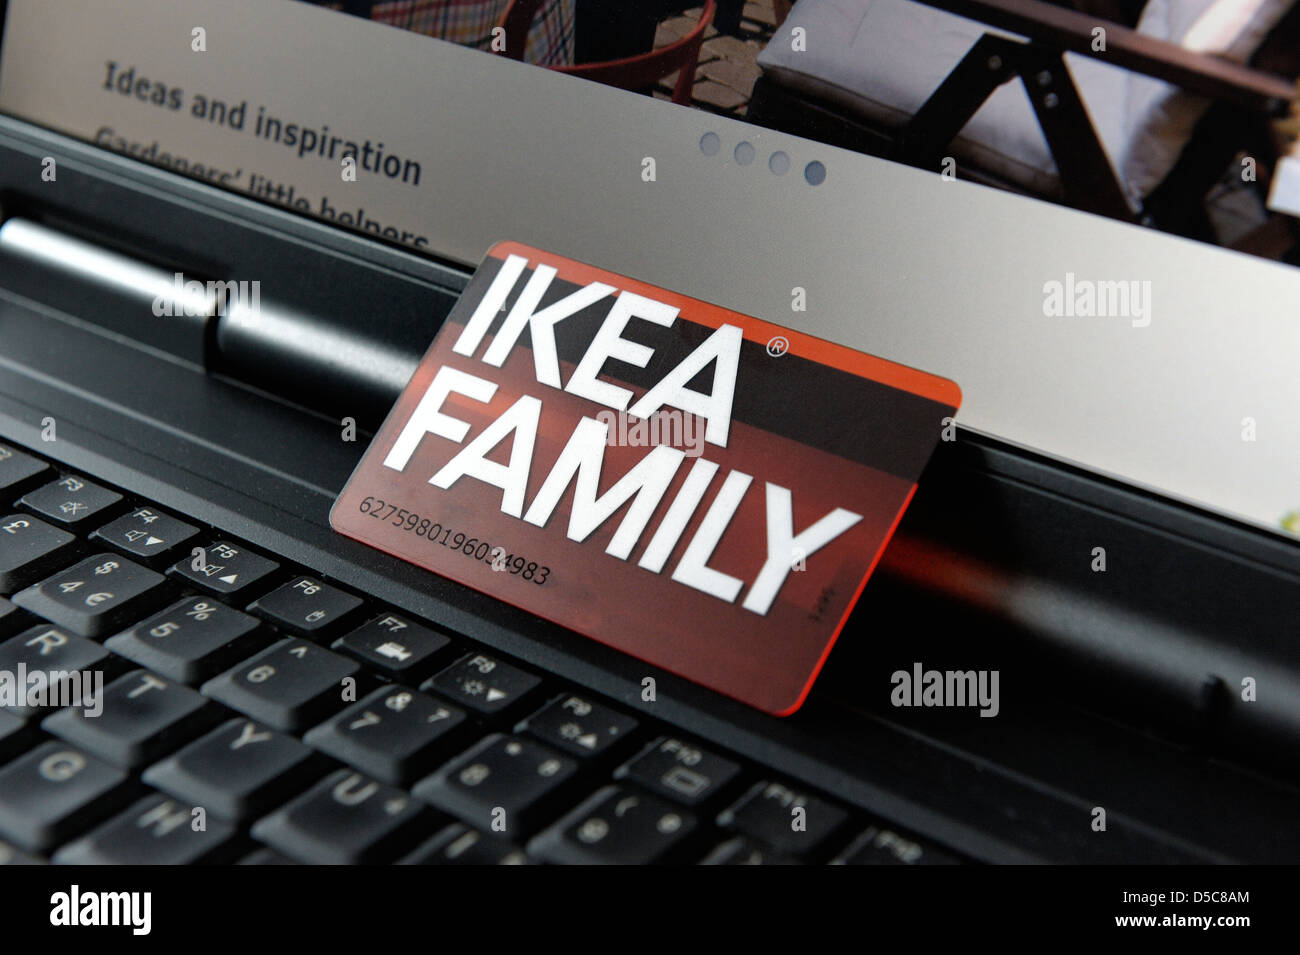 Ikea Bank Hotline Loyalty Card Stock Photos Loyalty Card Stock Images Page